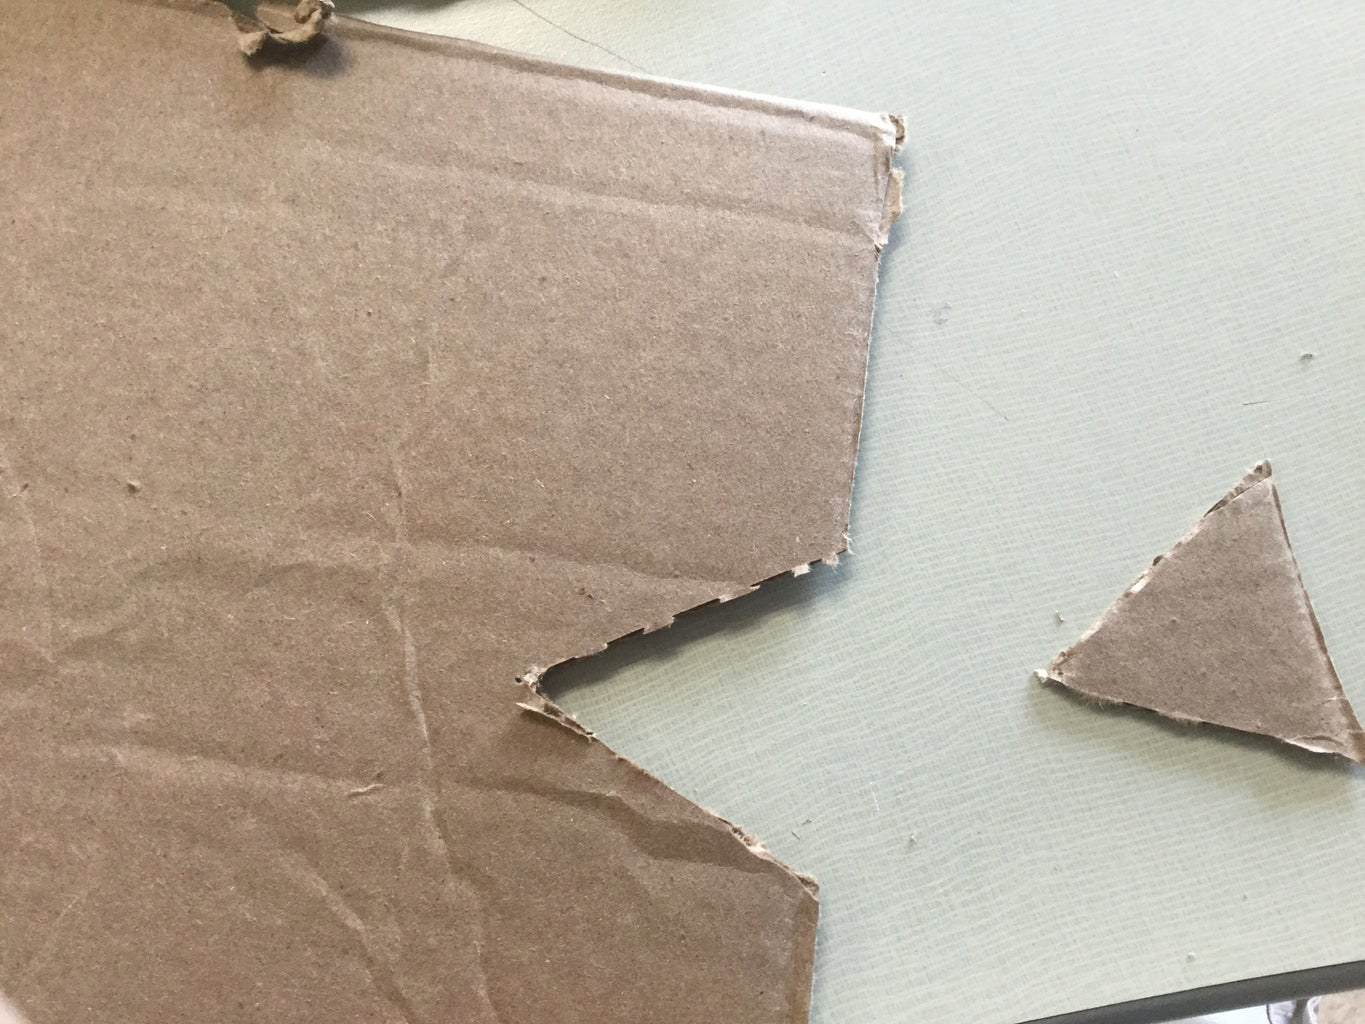 Cutting a V Shape and Glueing the Mousetrap